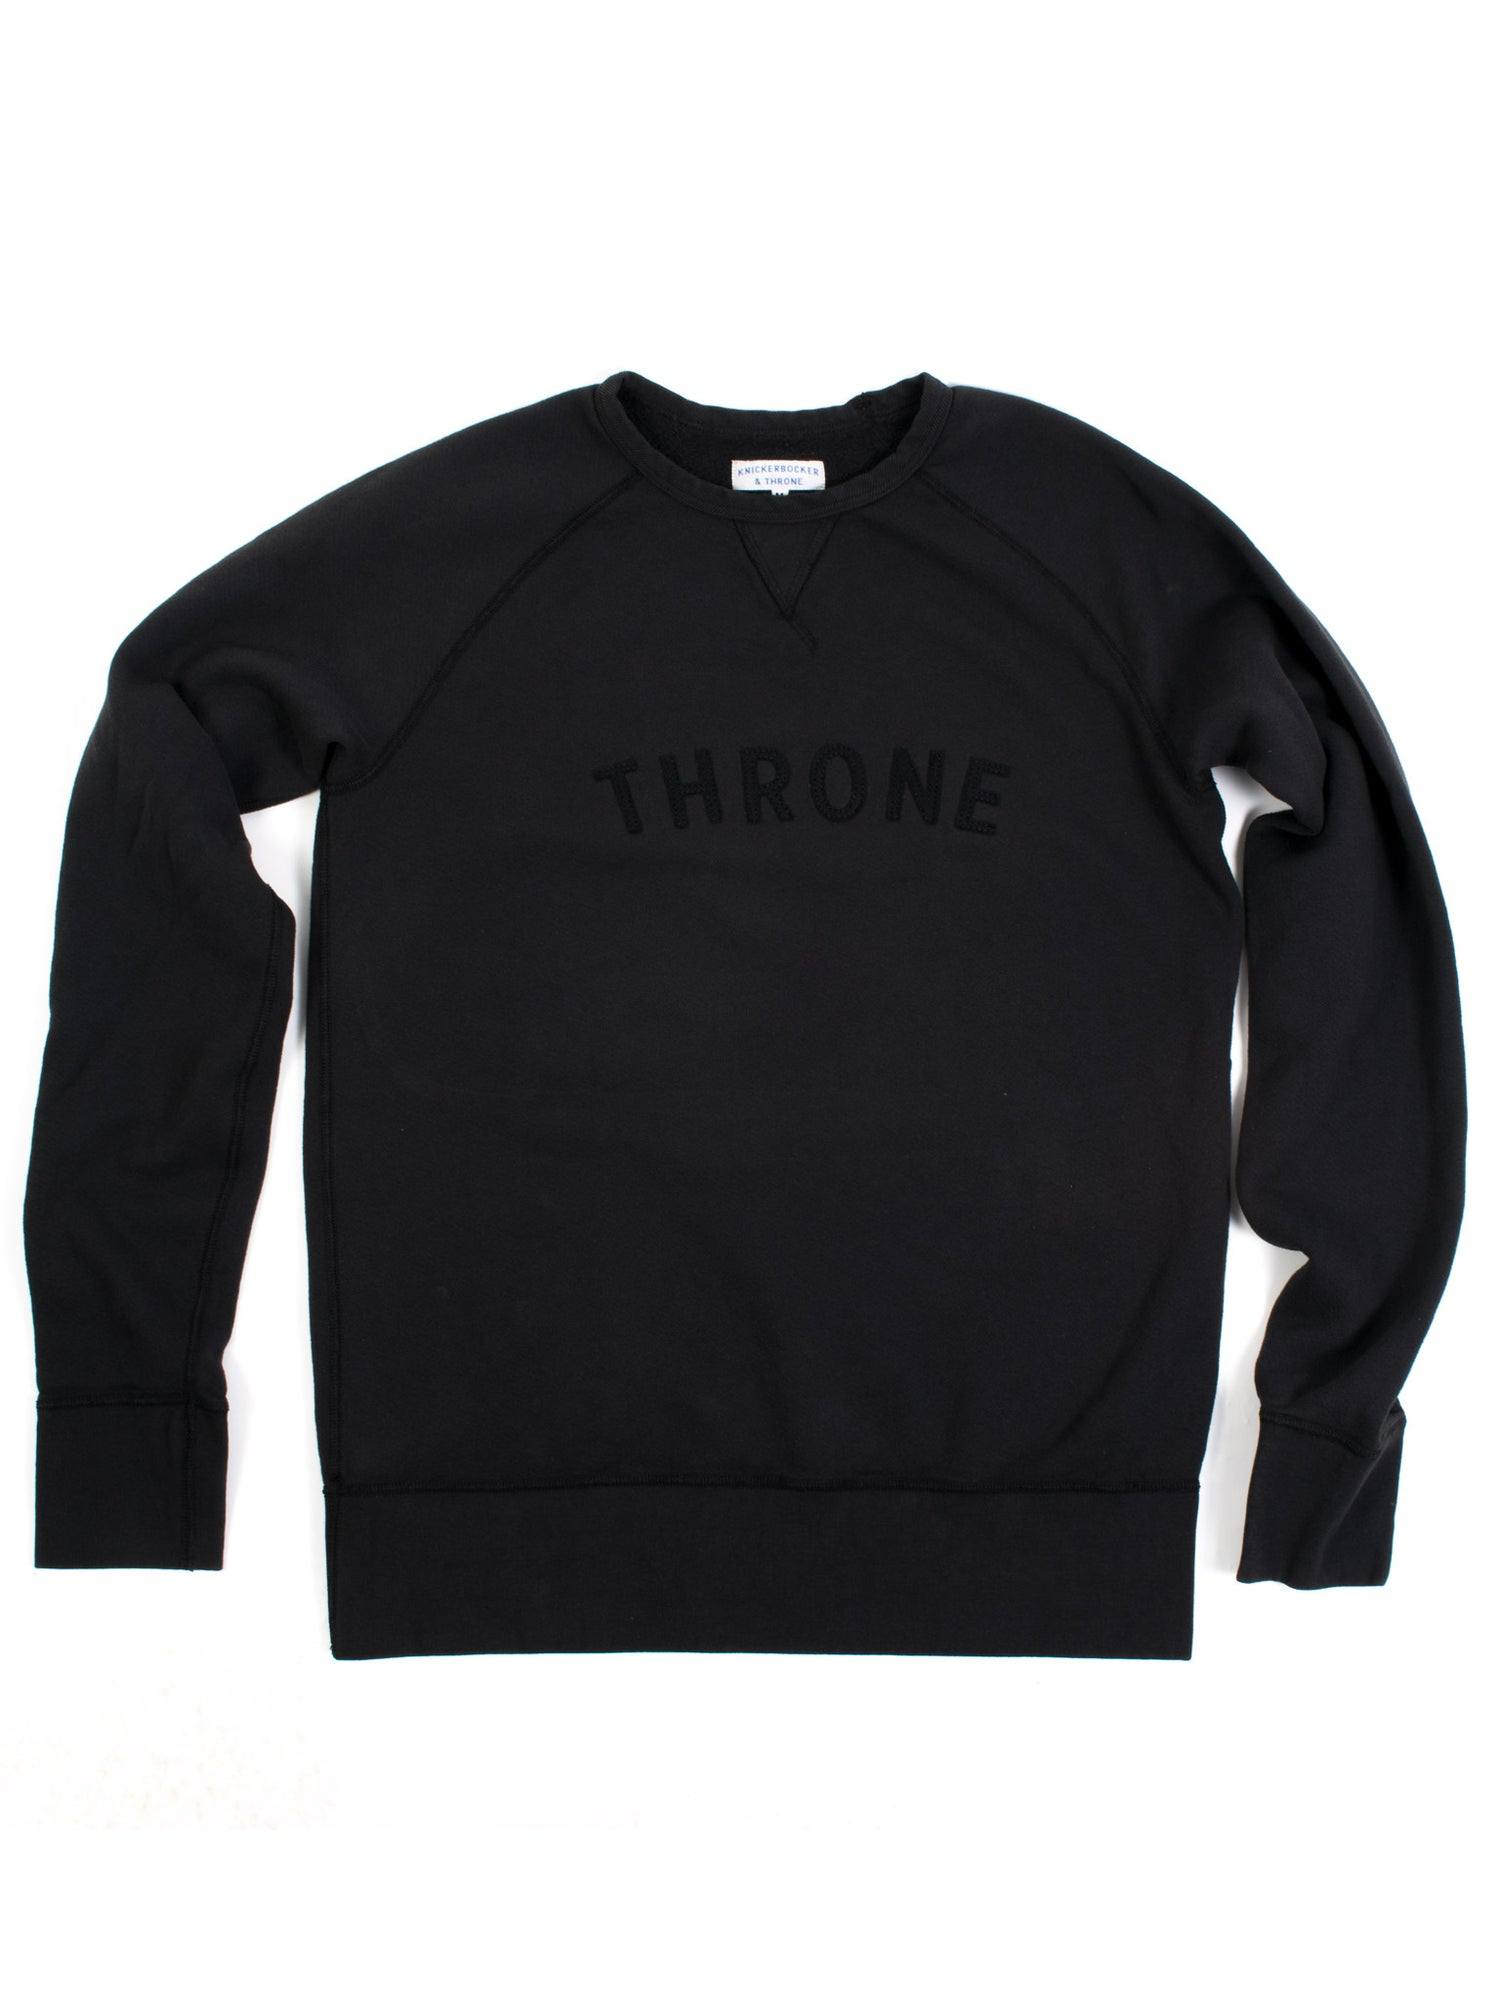 Throne x Knickerbocker Campus Sweatshirt